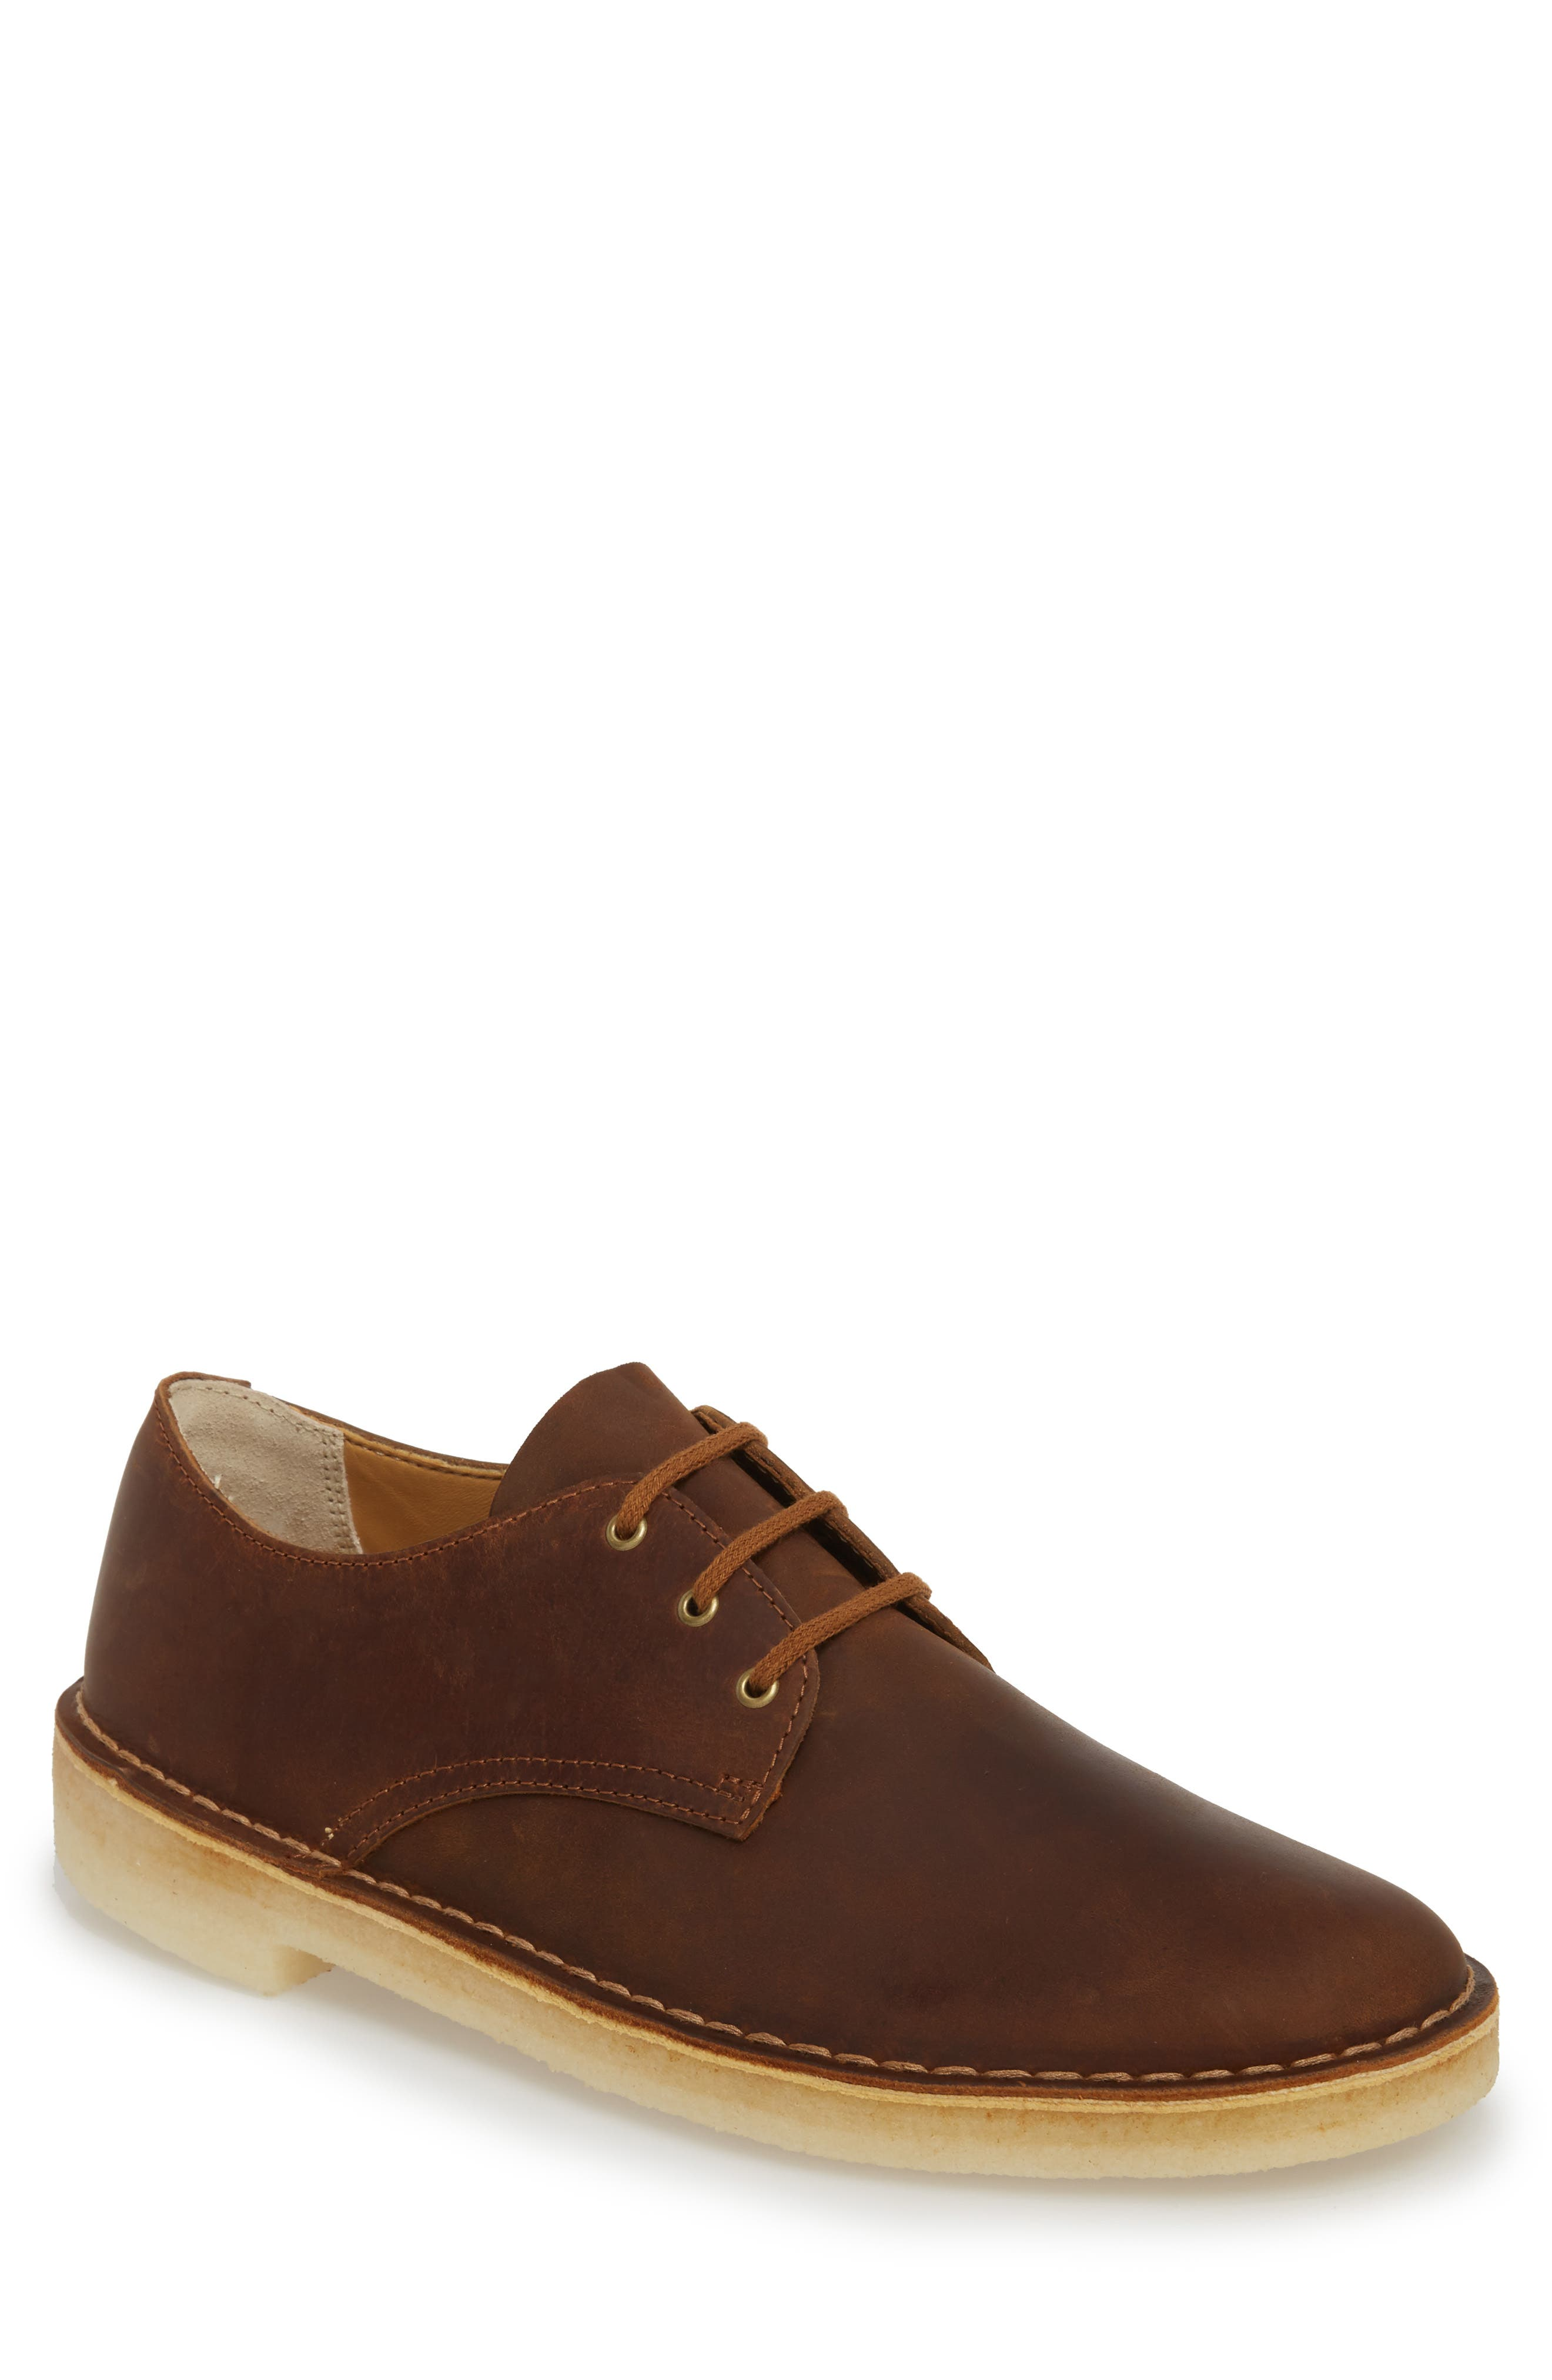 Clarks<sup>®</sup> Desert Crosby Plain Toe Derby,                         Main,                         color, Beeswax Leather